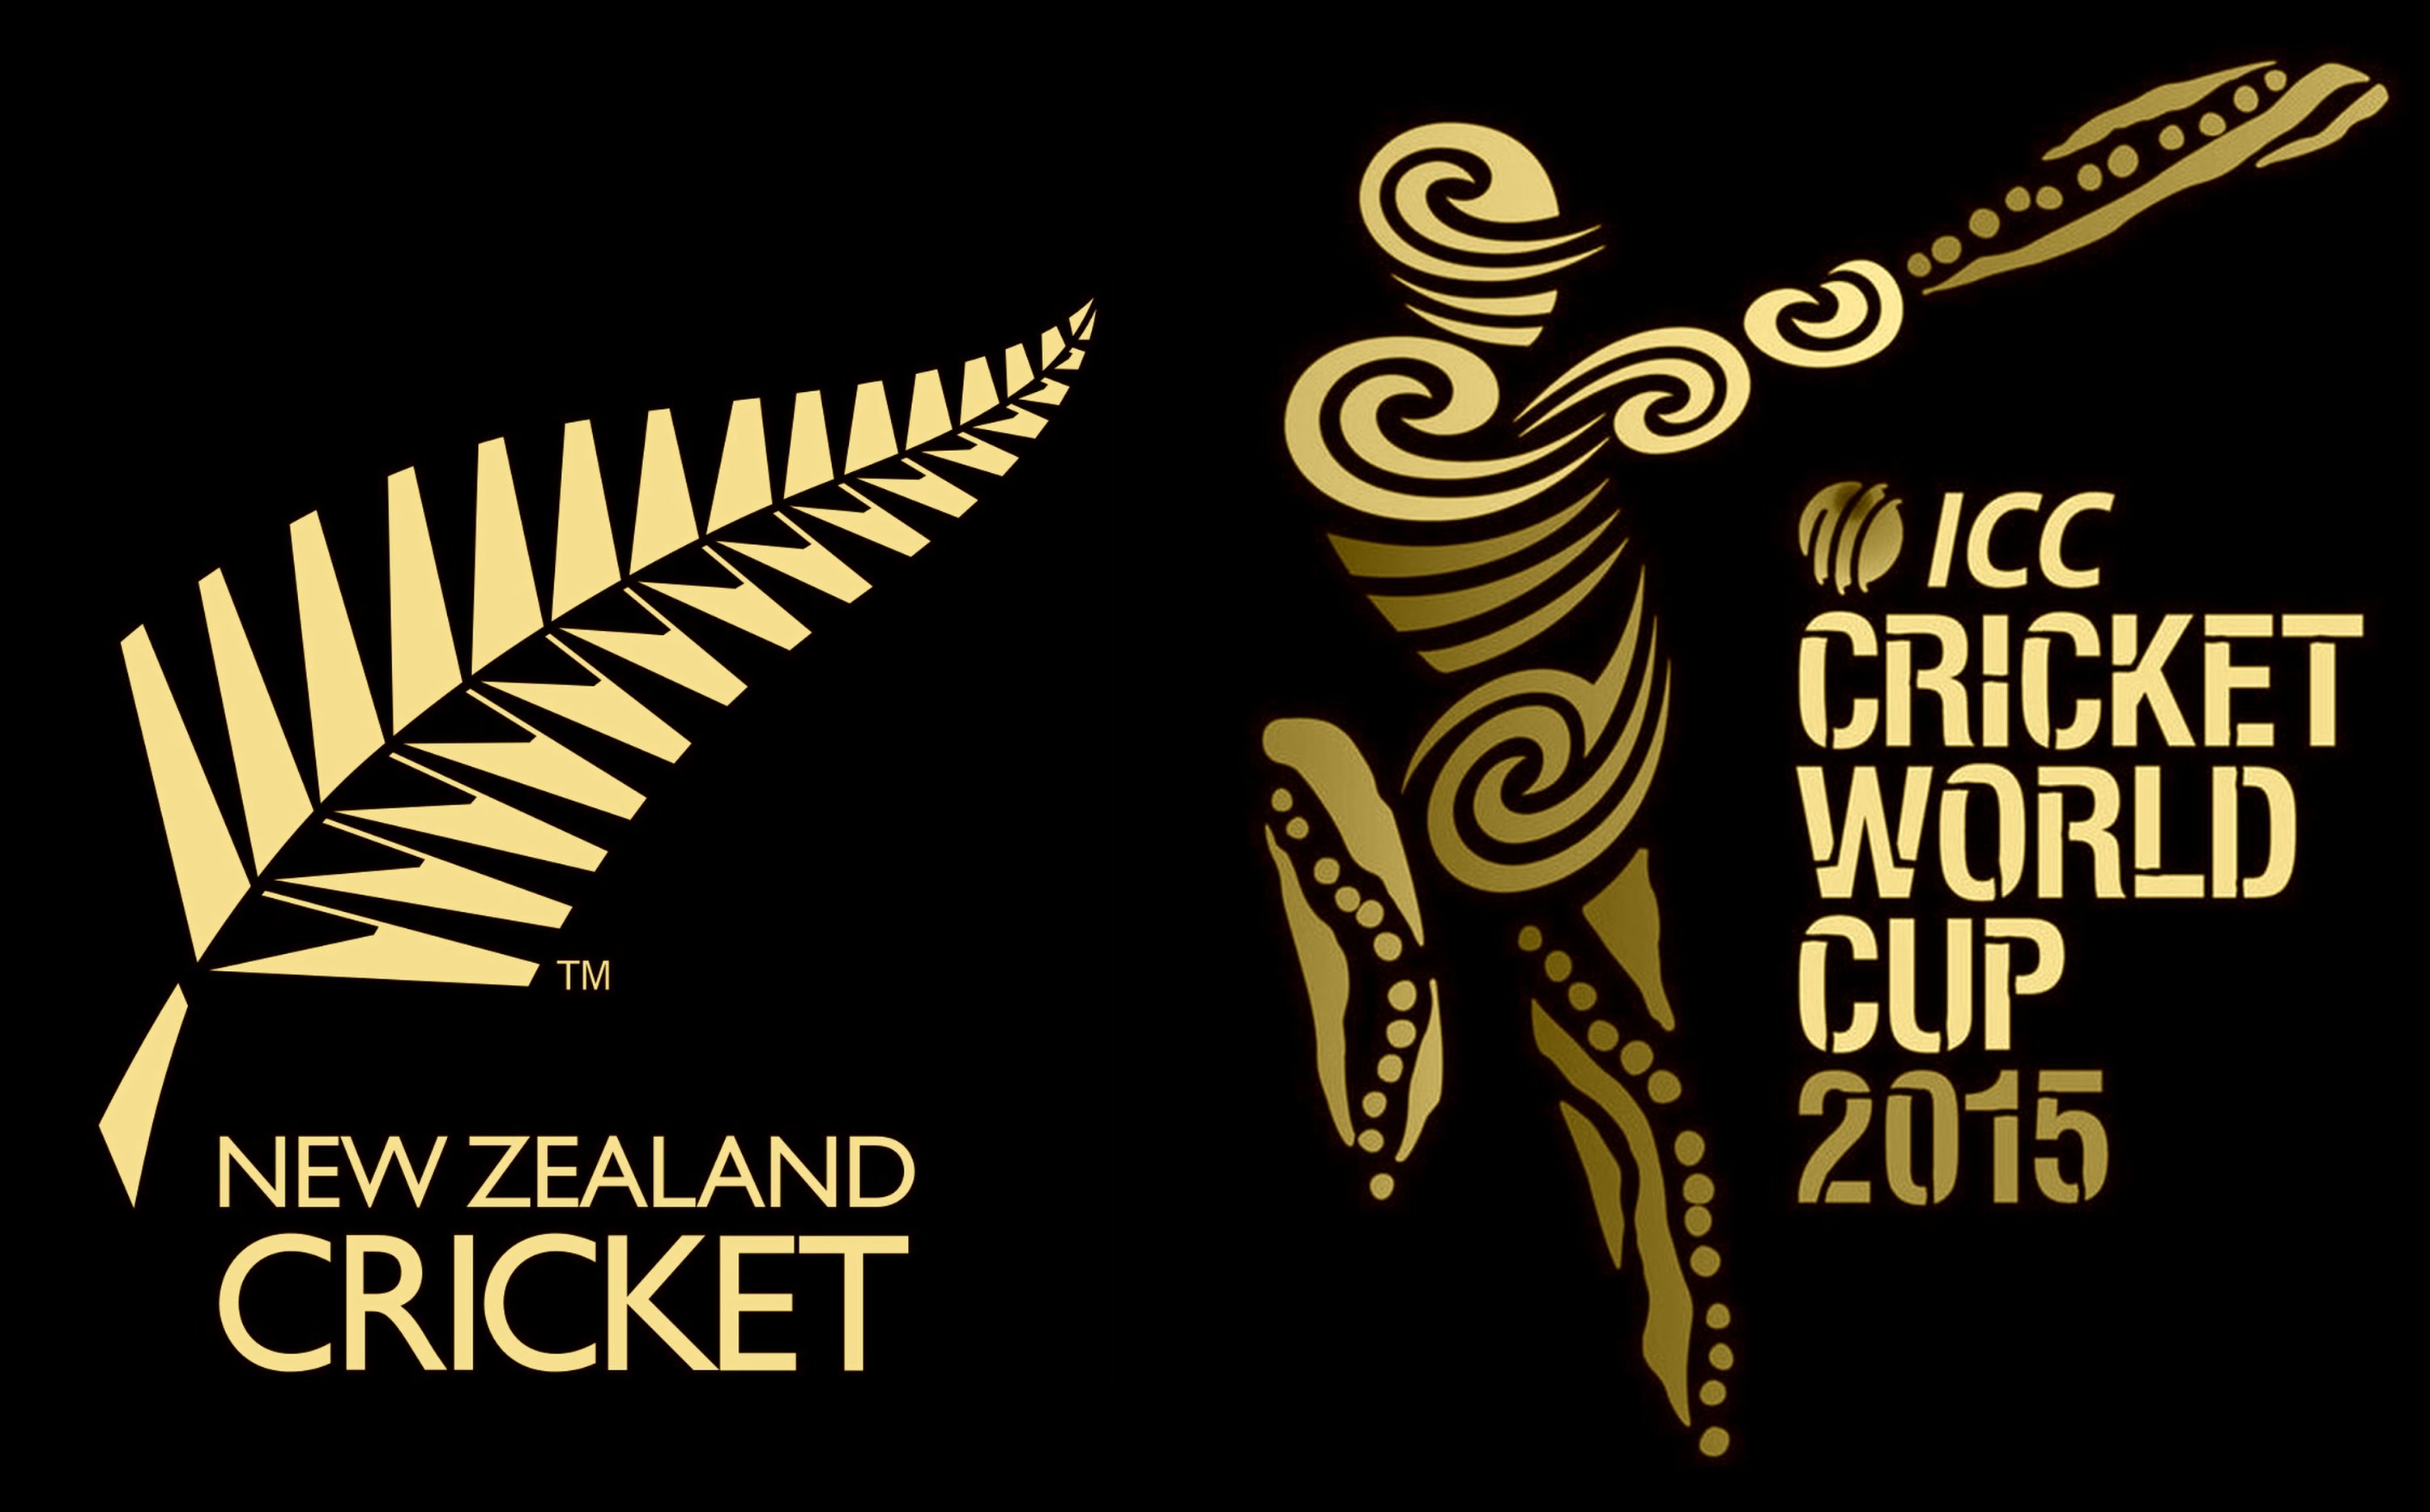 Cricket World Cup 2015 Teams Hd Wallpapers Hd Wallpapers